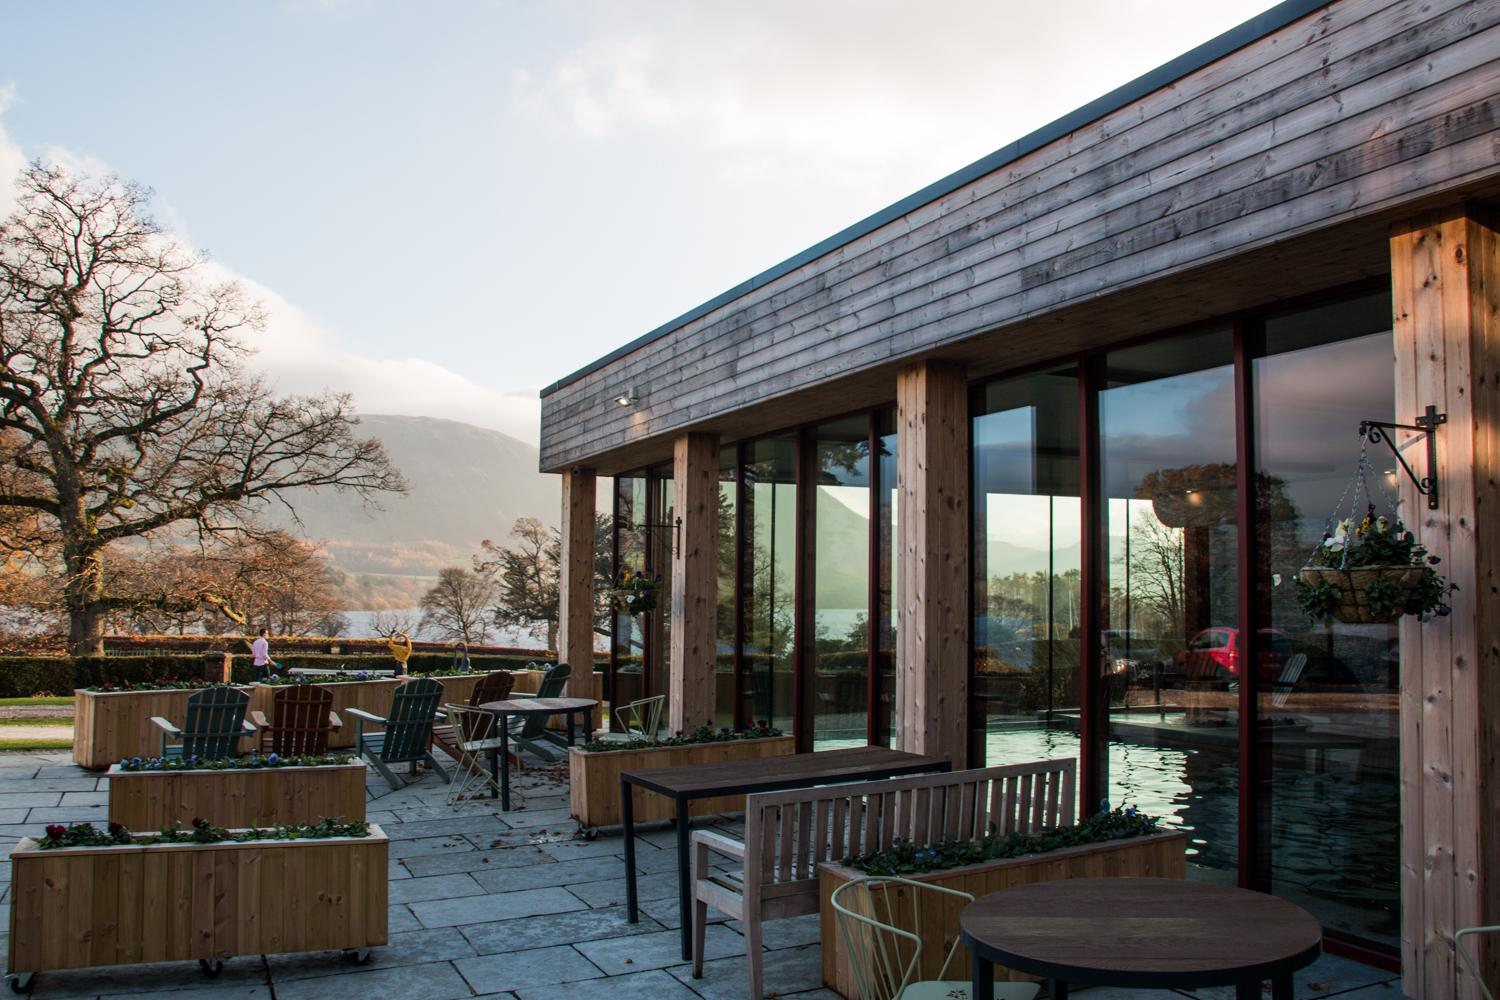 Places to Stay: Another Place, The Lake, Cumbria